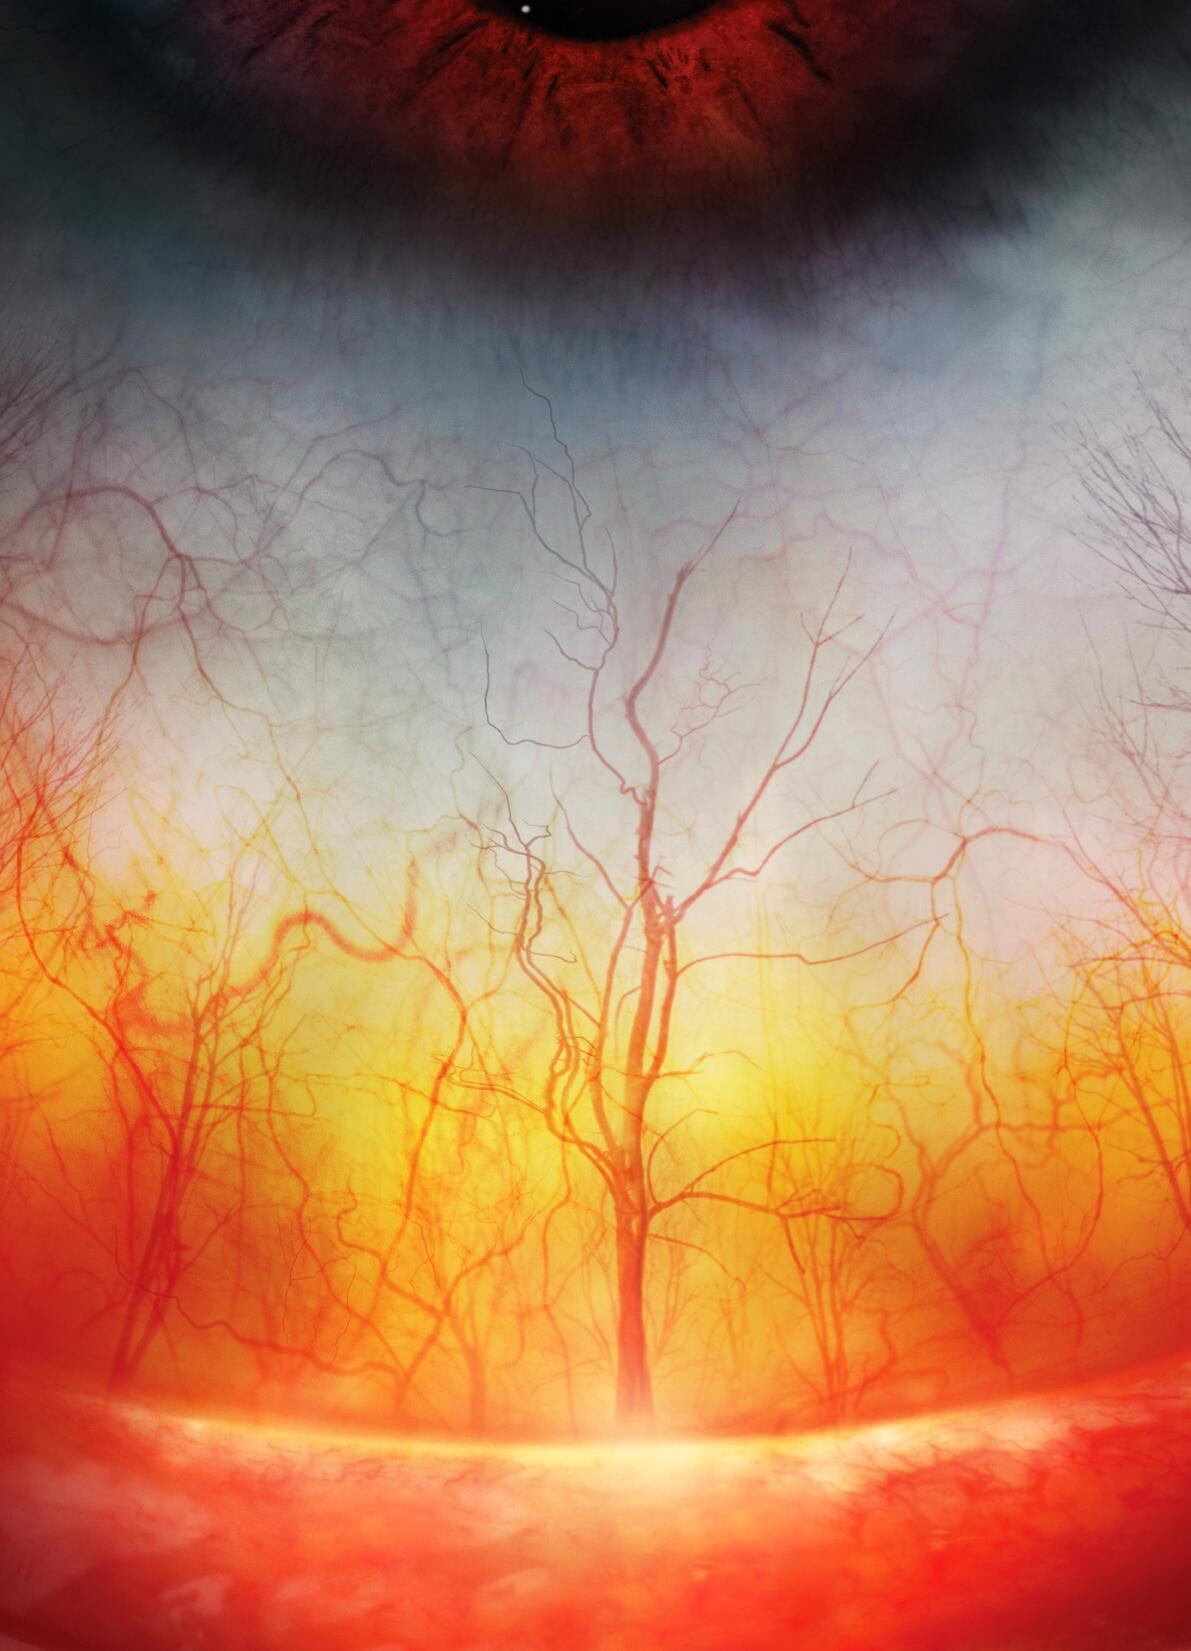 Apparently this is a close-up of the blood vessels in a human eye http://t.co/gQJOrfXIIF